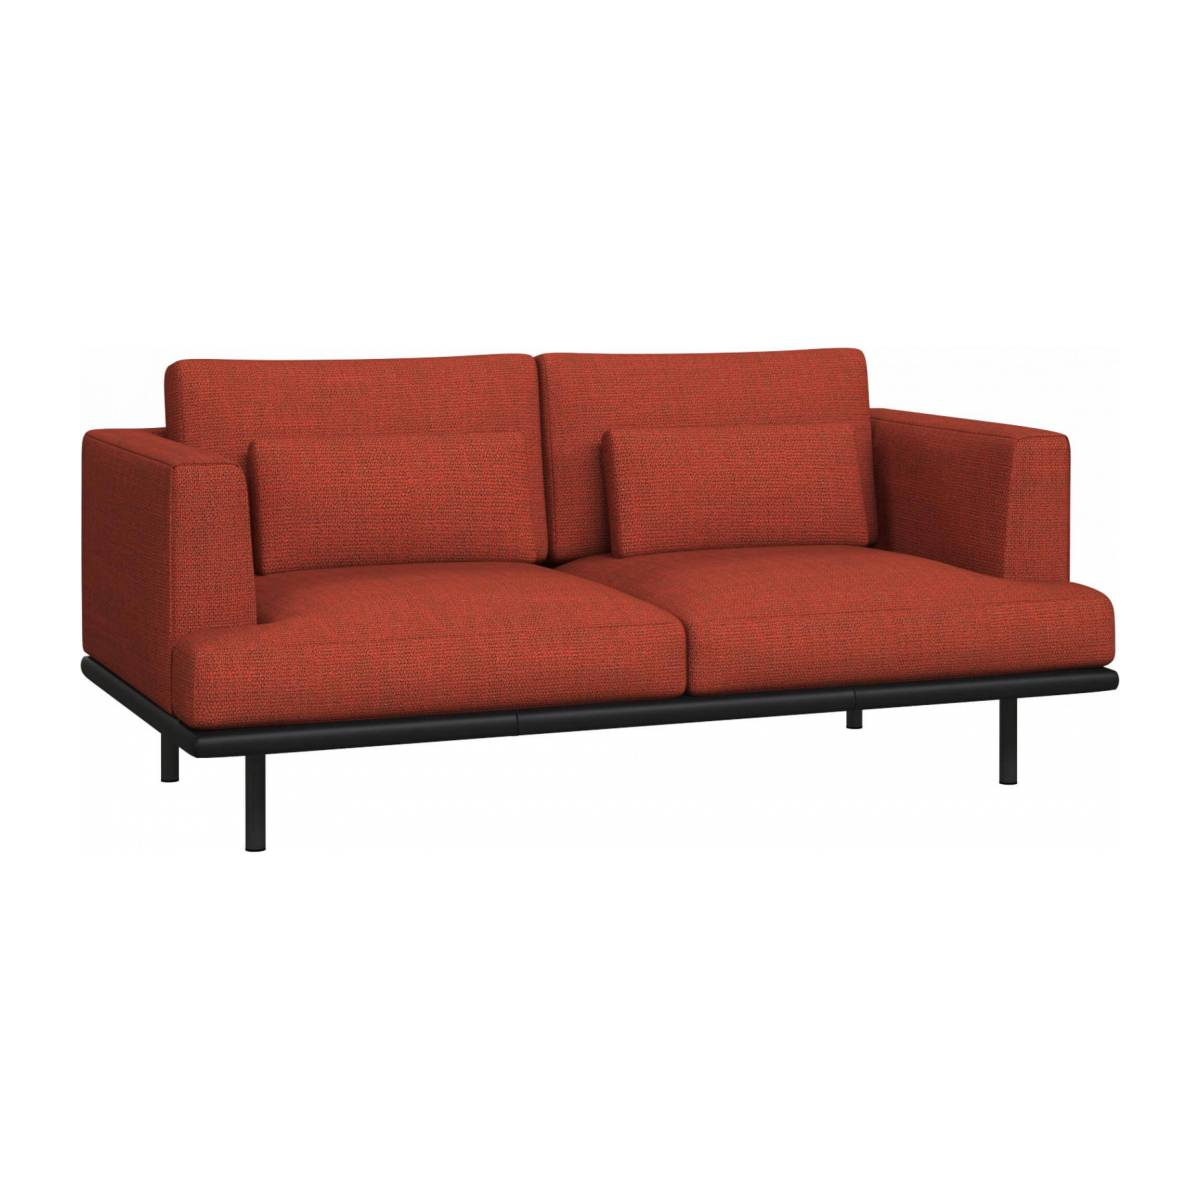 2 seater sofa in Fasoli fabric, warm red rock with base in black leather n°3